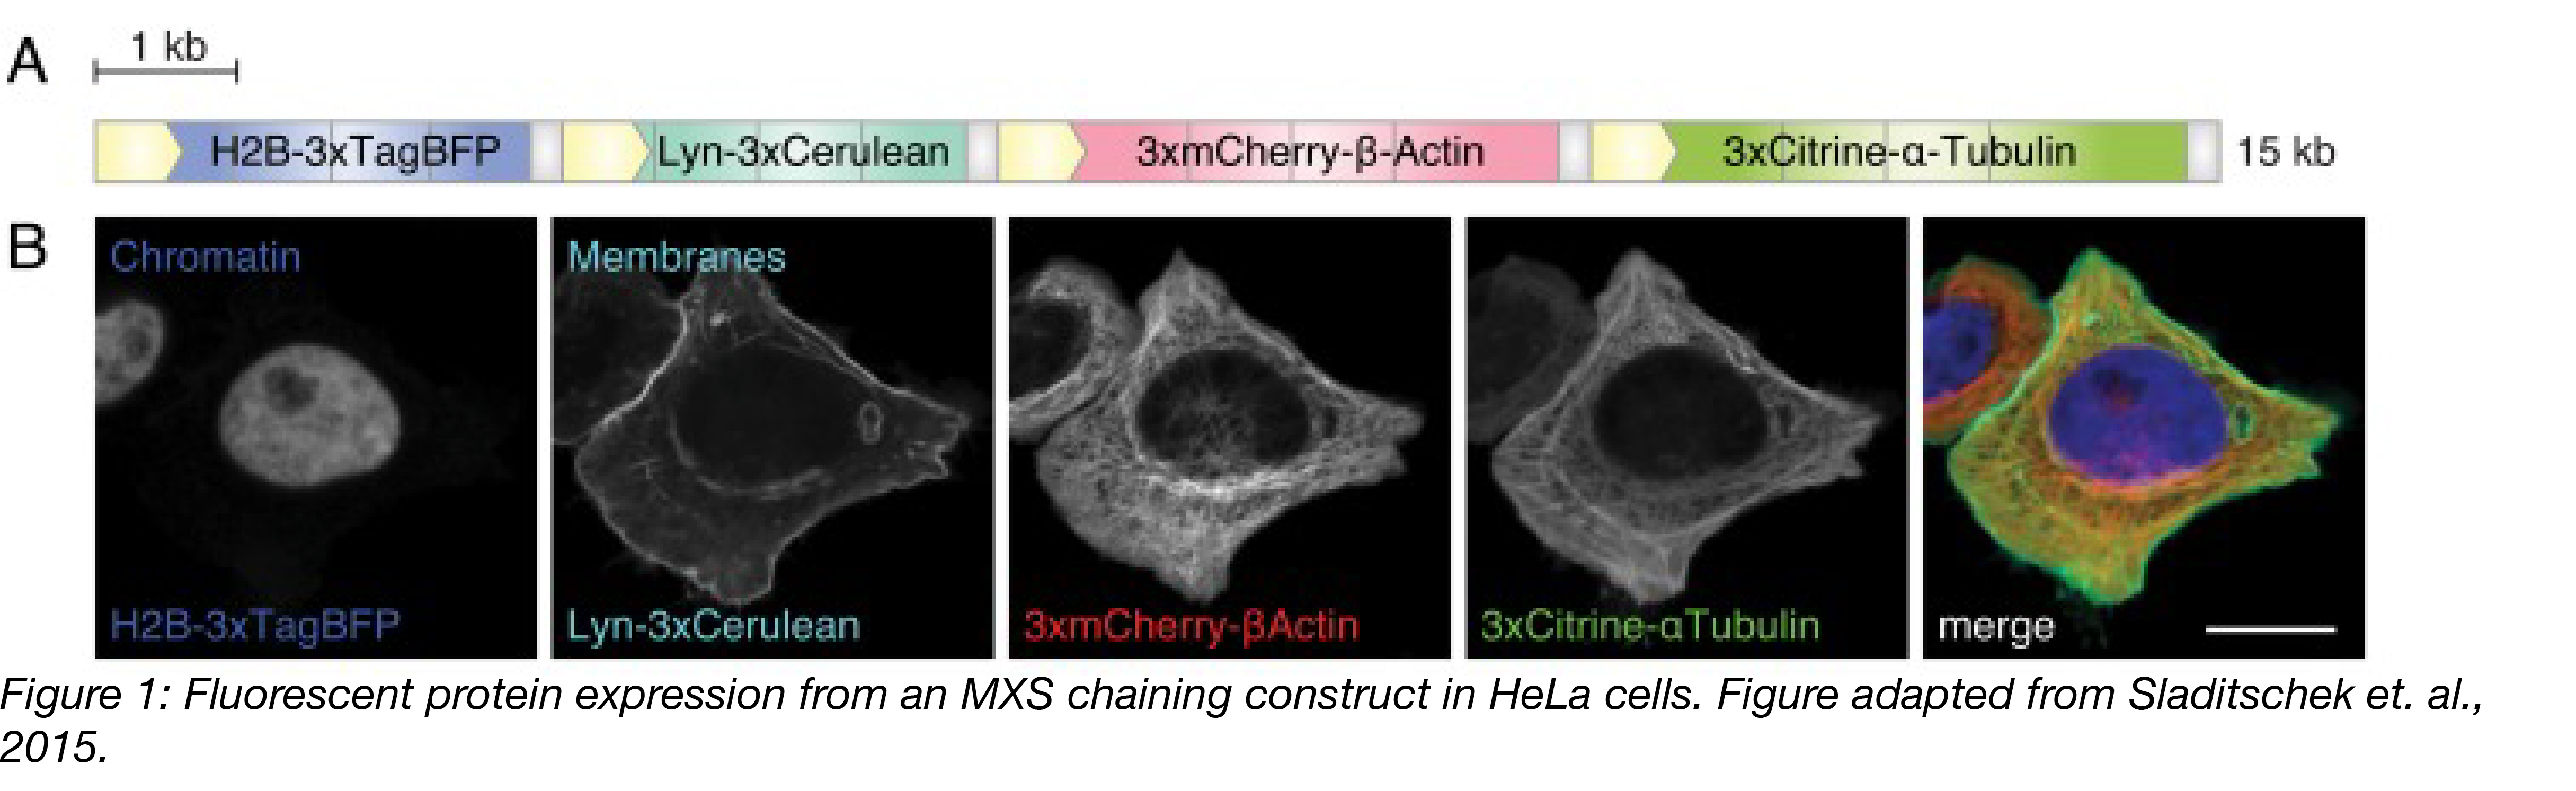 Figure 1 Fluorescent protein expression from MXS construct in HeLa Cells-01.png